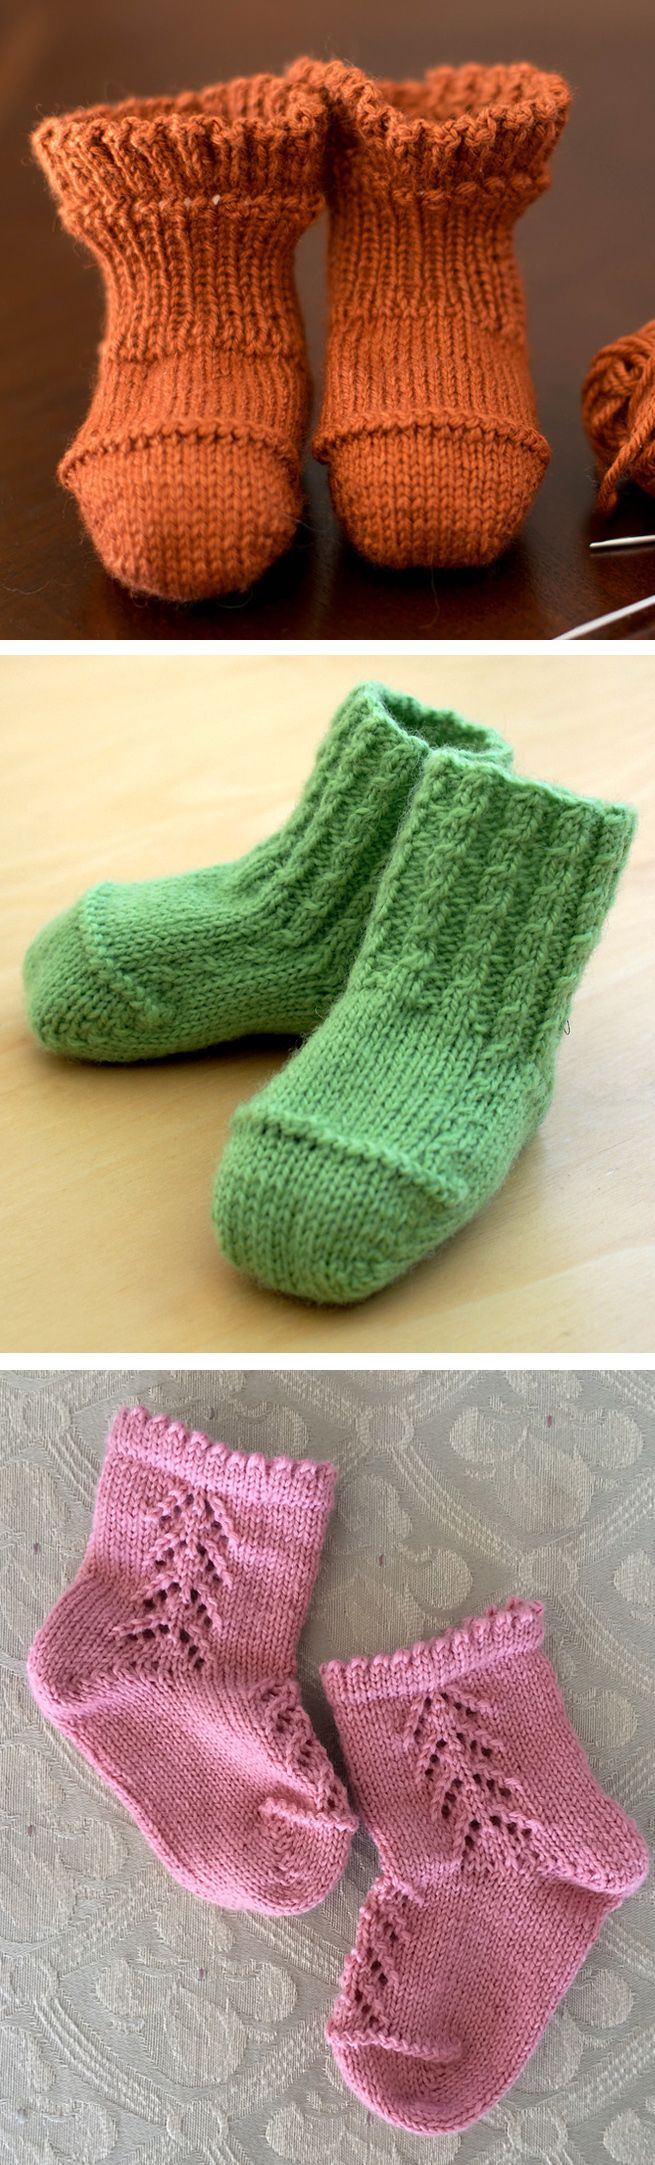 Free Knitting Pattern for 3 Better-Than-Booties Baby Socks – Baby socks in 3 versions – Ruffle Rib, Cable Rib, and Chevron Lace. All are knit with a short-row heel and toe and decorative zigzag bind-off. Designed by Ann Budd. Pictured projects by rahardjo-knits, Calune, and drakey